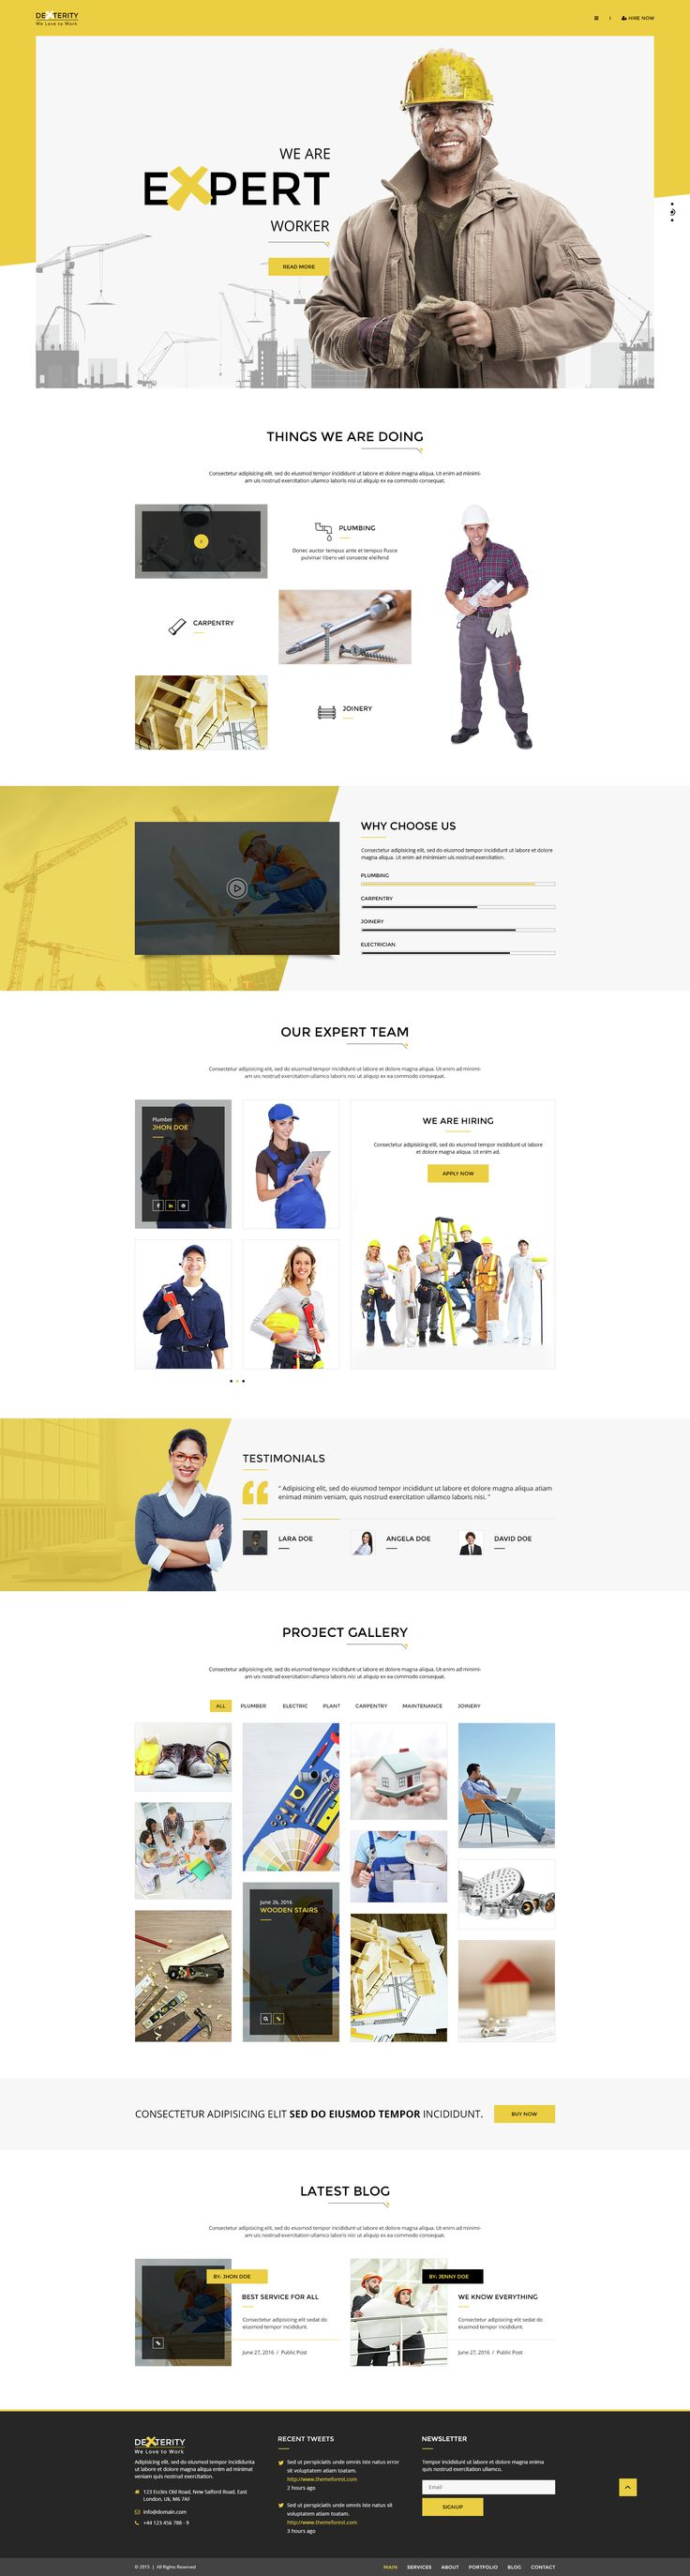 web home design. Dexterity  PSD Template for businesses related to Handyman Construction Architect and Plumbers Website LayoutWebsite Home Best 25 Mobile website template ideas on Pinterest Responsive